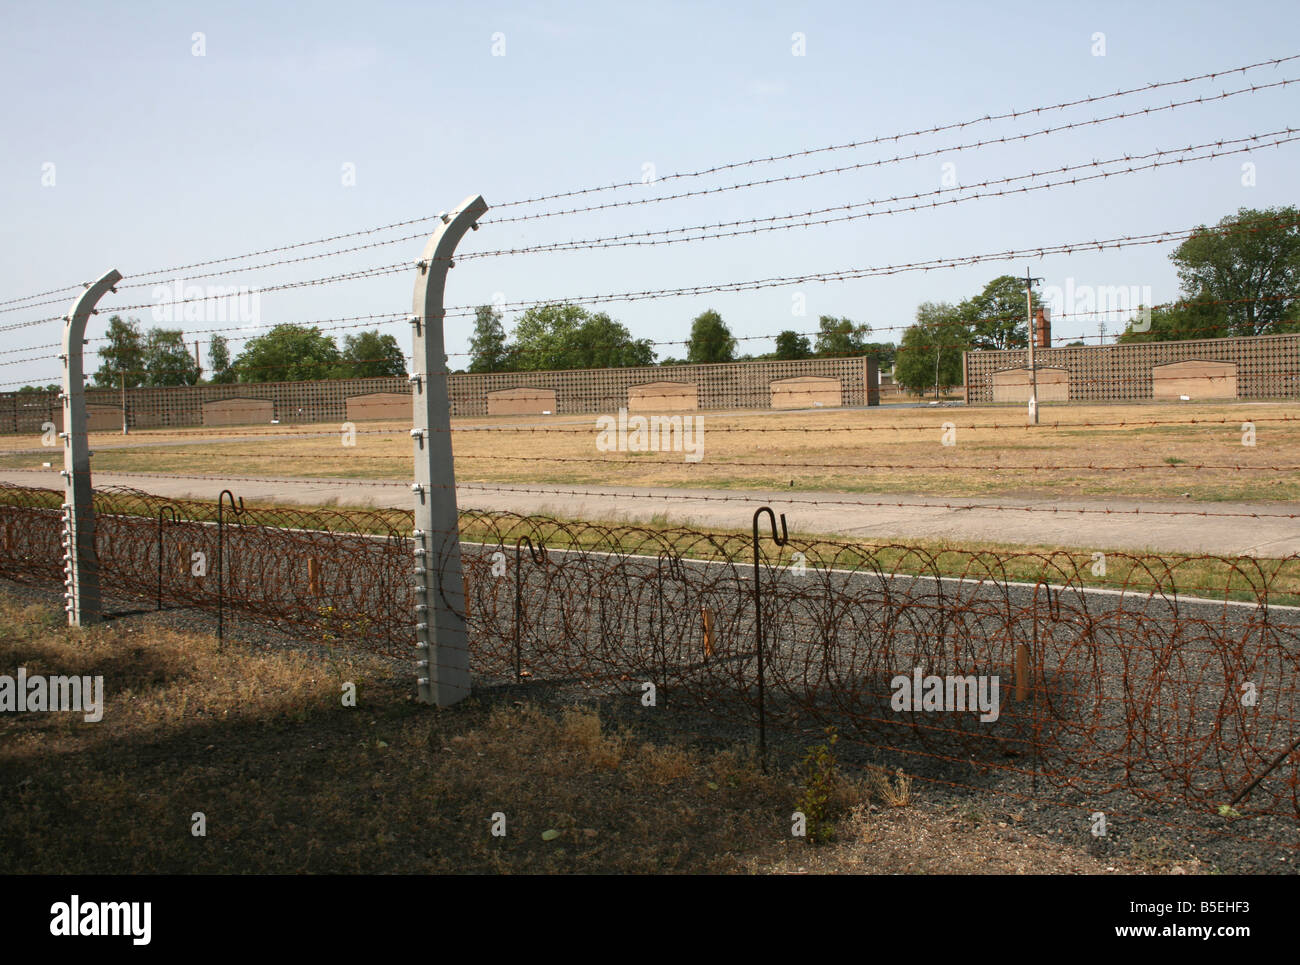 barbed wire fence Sachsenhausen Concentration camp Berlin Germany ...